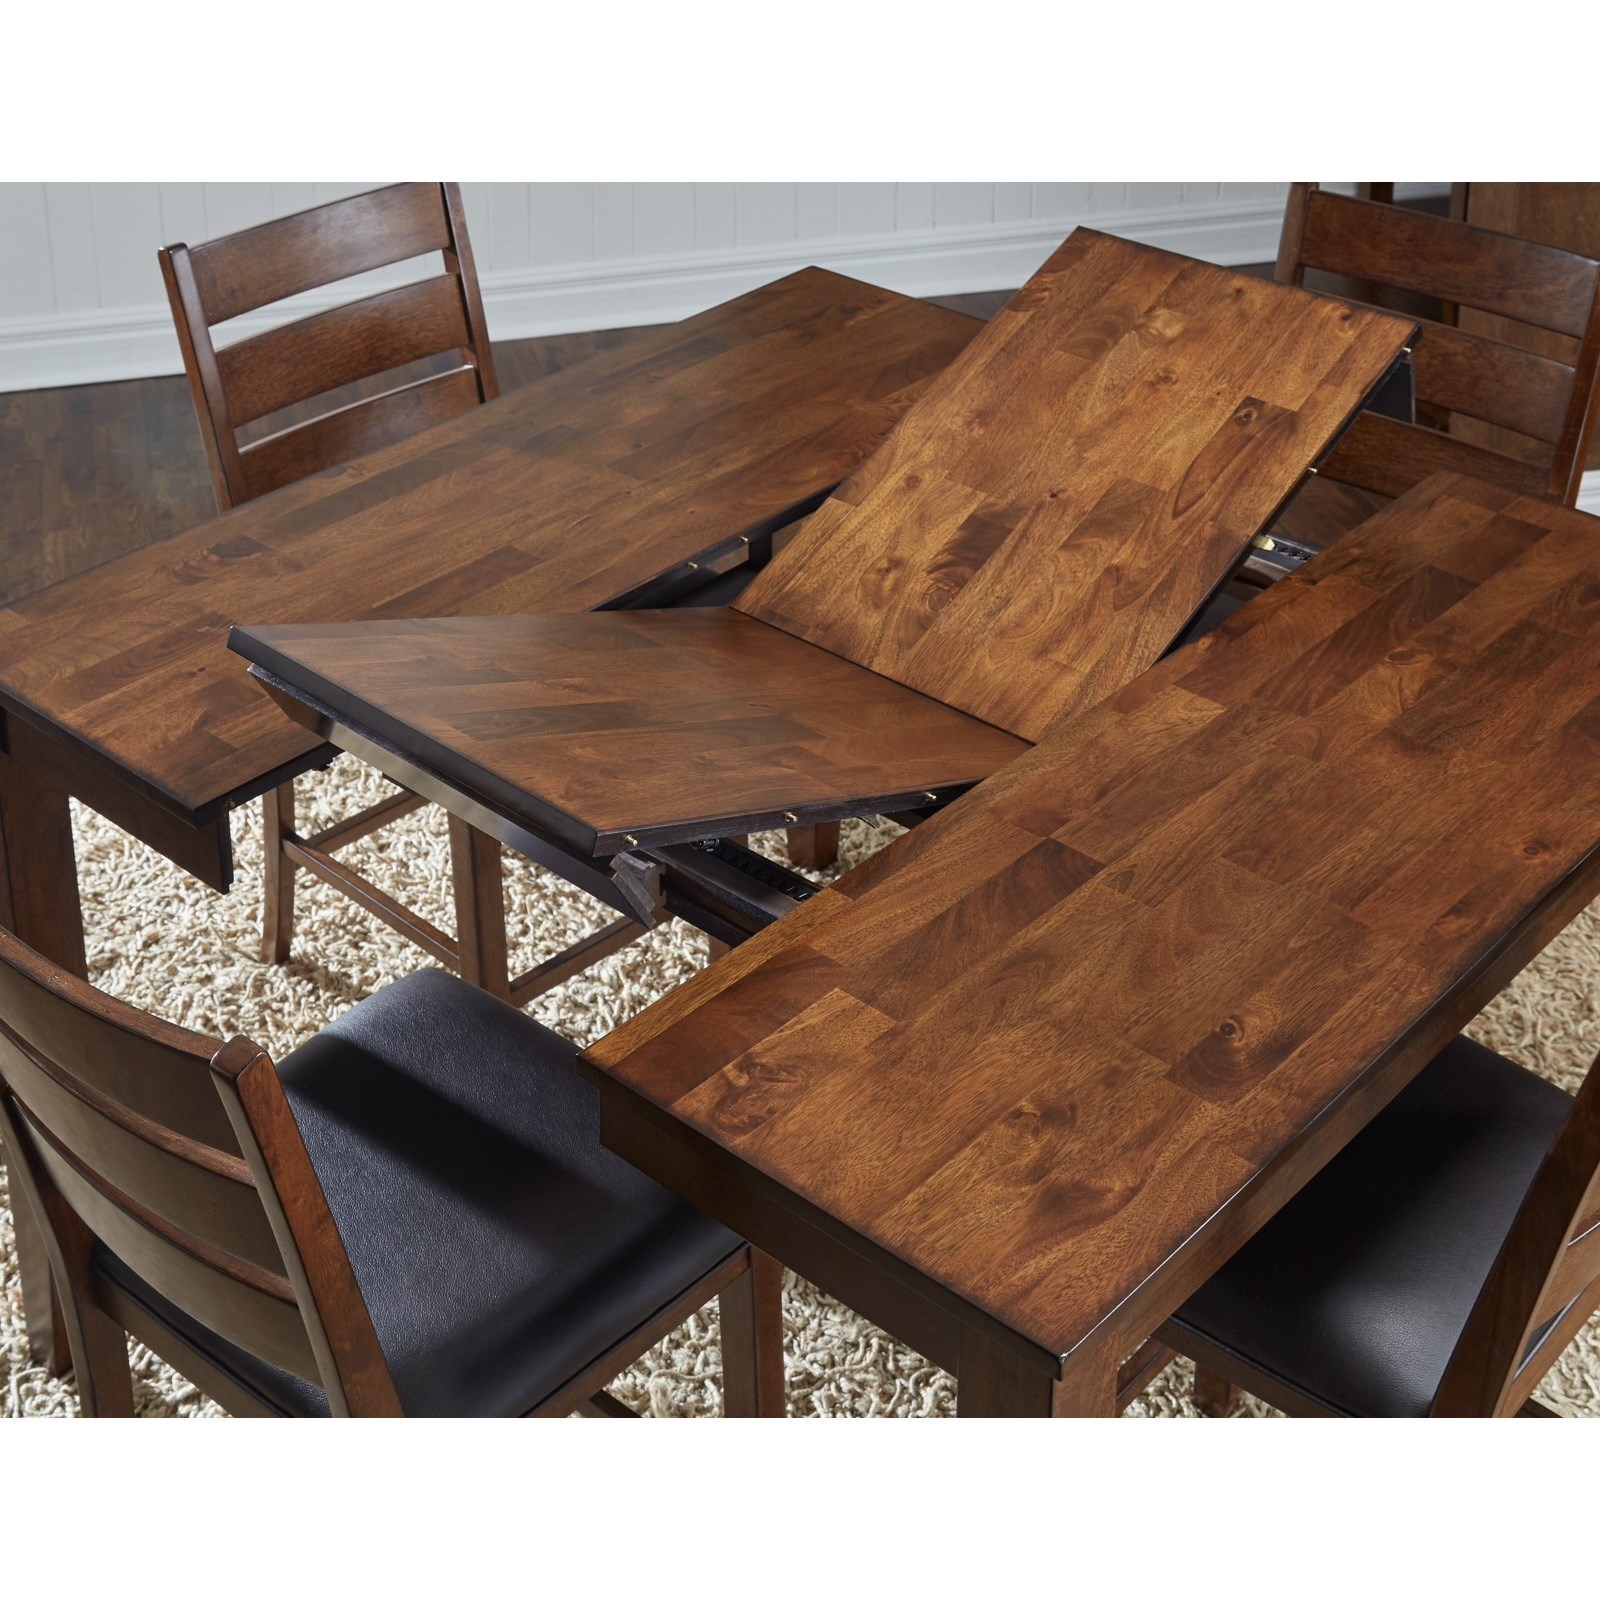 Dining Room Table With Leaf: AAmerica Mason Square Butterfly Leaf Dining Table